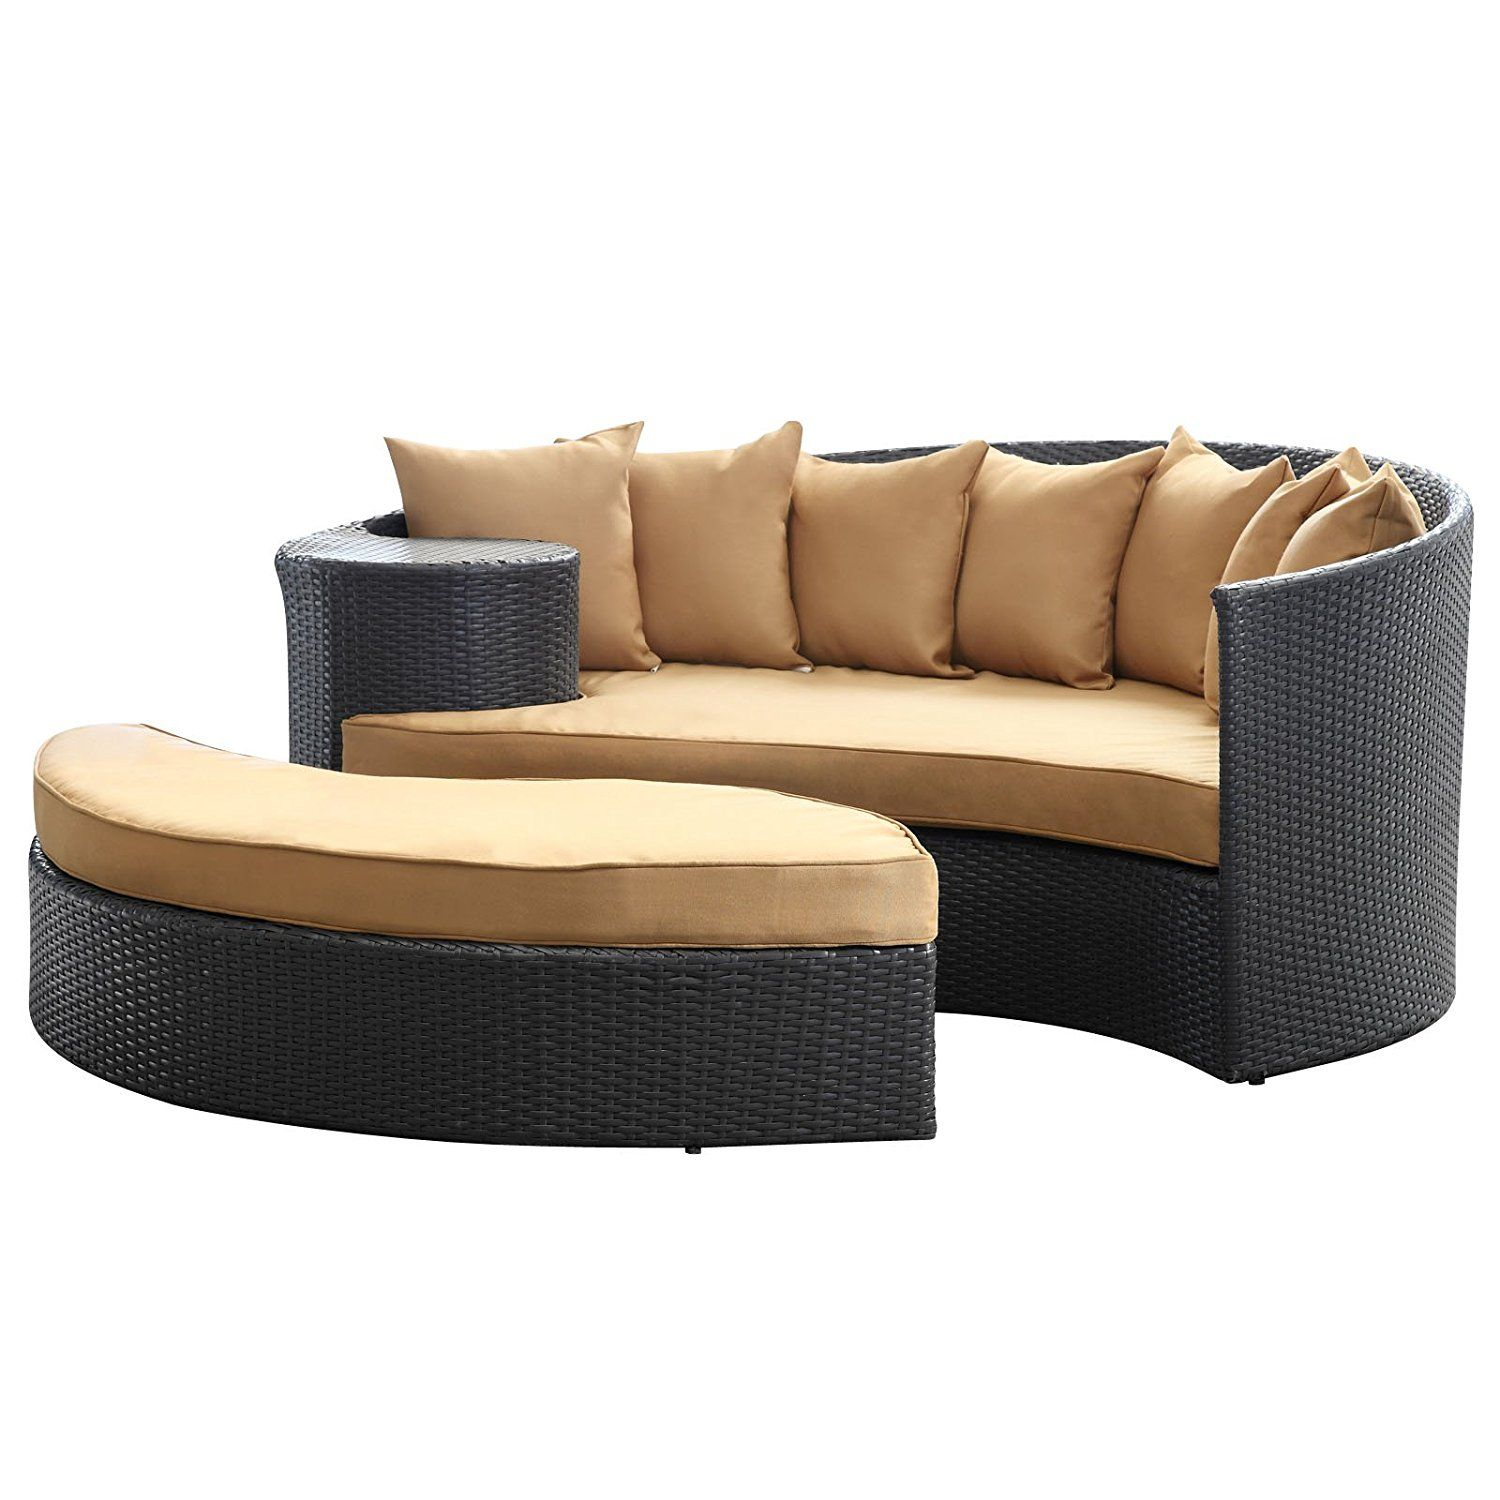 Lexmod Taiji Outdoor Wicker Patio Daybed With Ottoman In Espresso With Mocha Cushions Outdoor Daybed Patio Lounge Chairs Patio Daybed